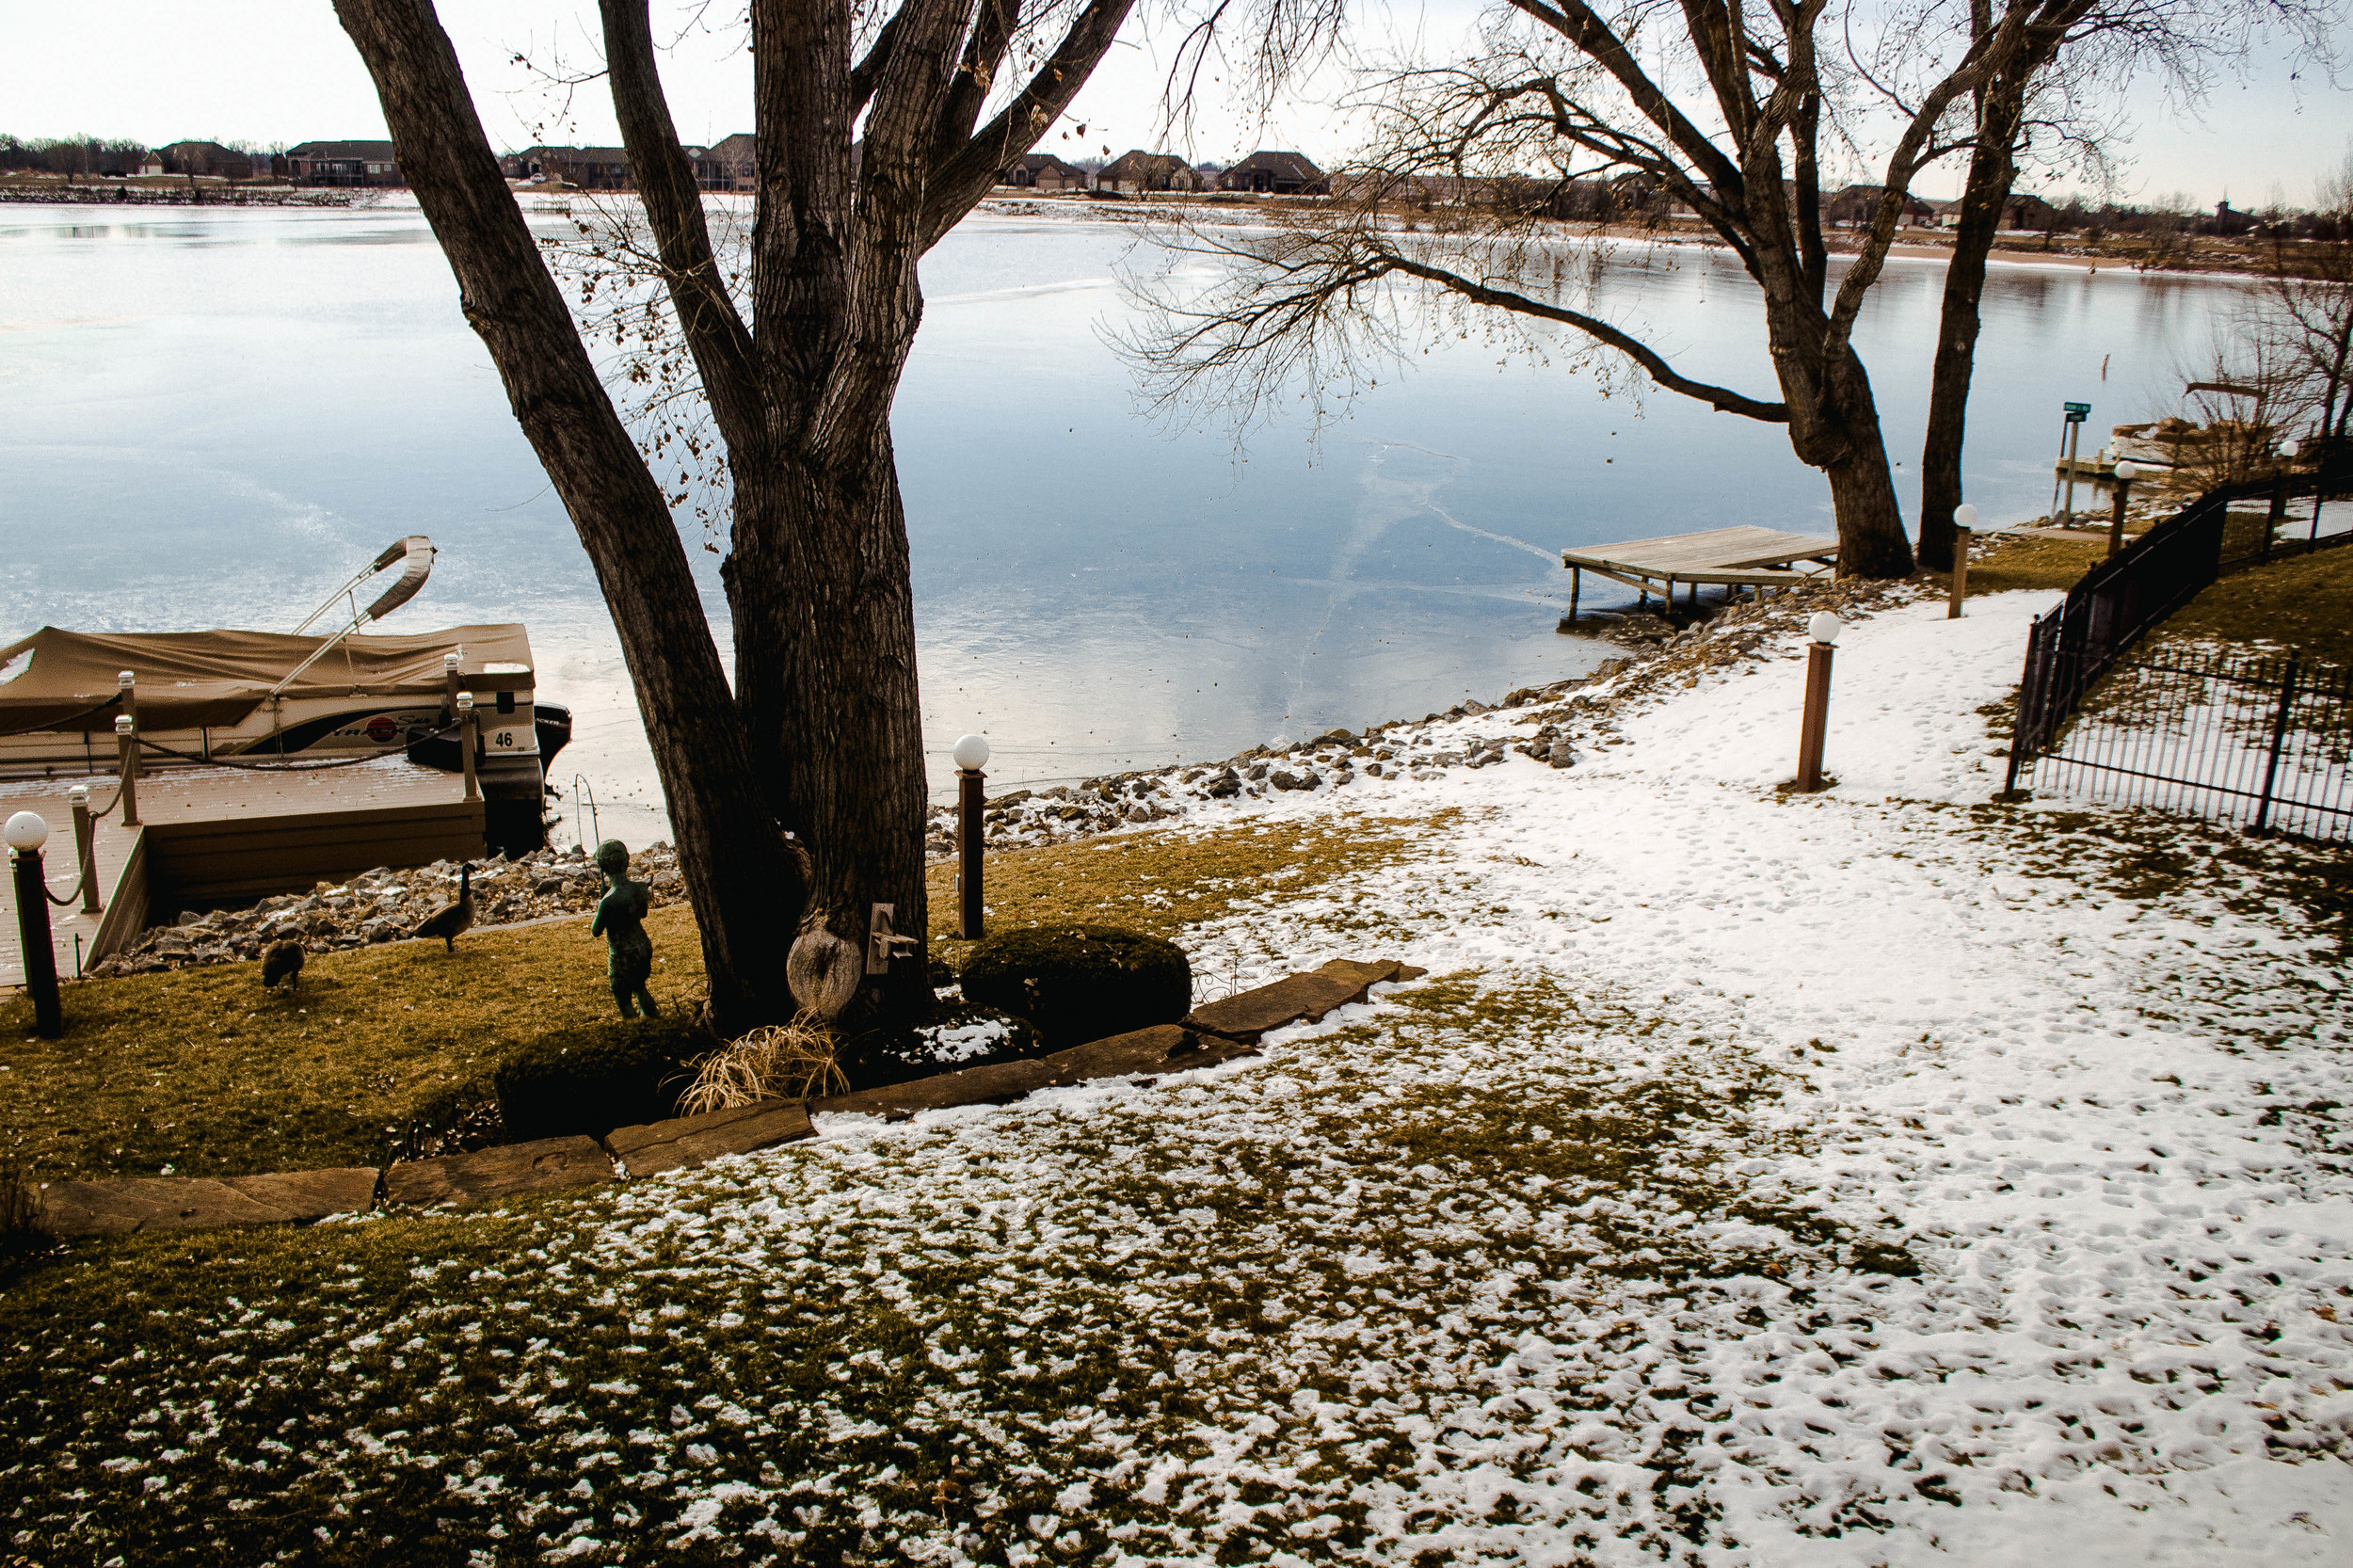 A snowy day out by the lake in Wichita, Kansas | by fit for the soul